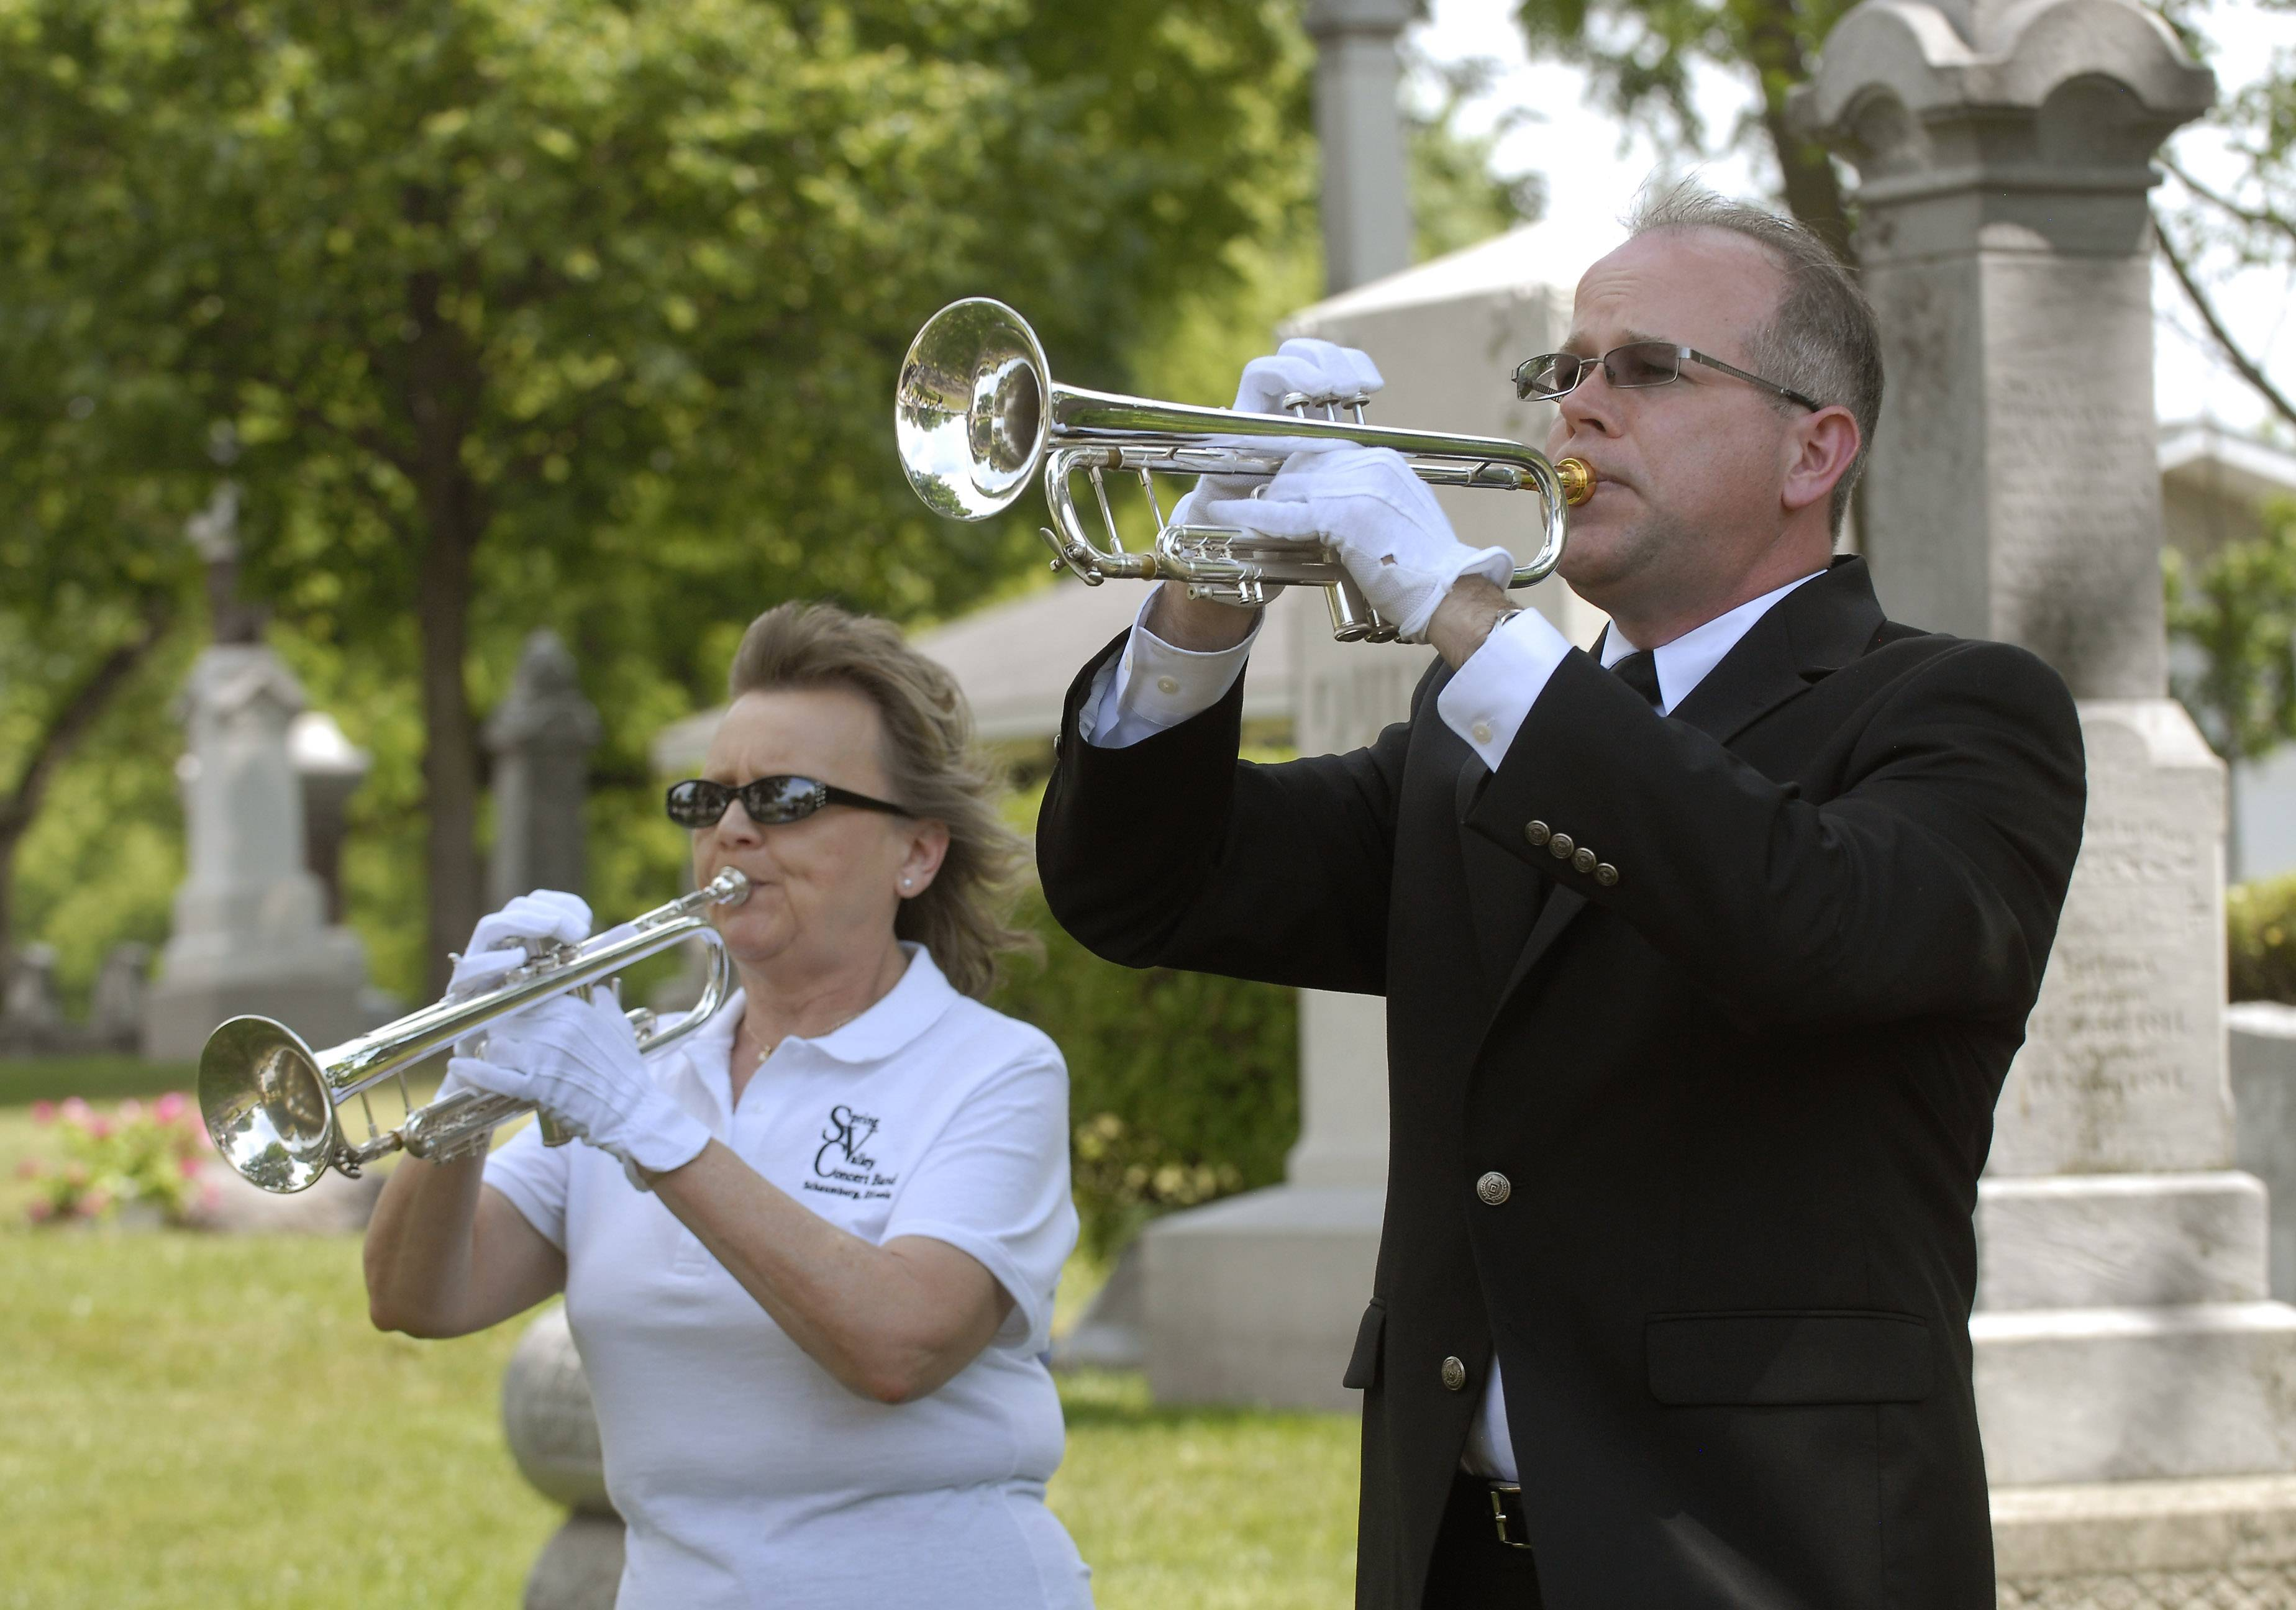 Spring Valley Concert Band members Stephen Foster of Hoffman Estates and Catherine Kapocius of Streamwood play taps during the Memorial Day service Monday at the St. Peter's Lutheran Church cemetery in Schaumburg.